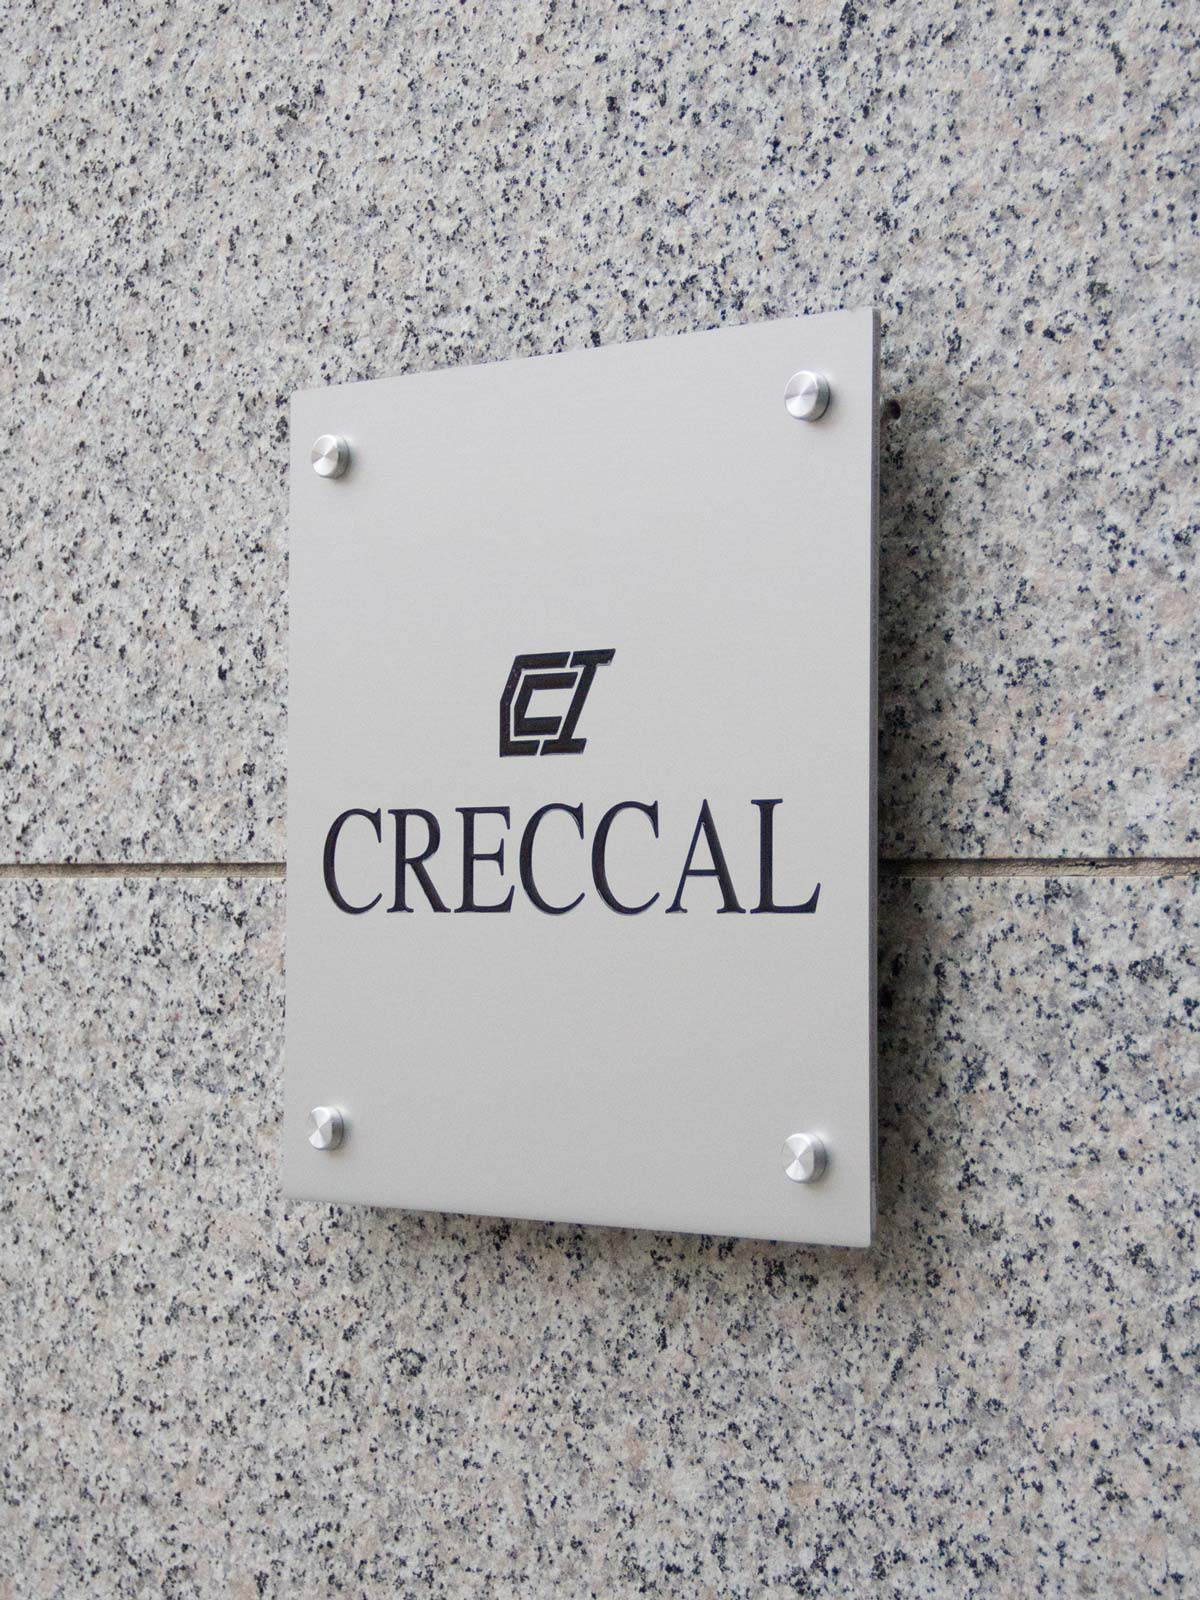 creccal_investments_LTD